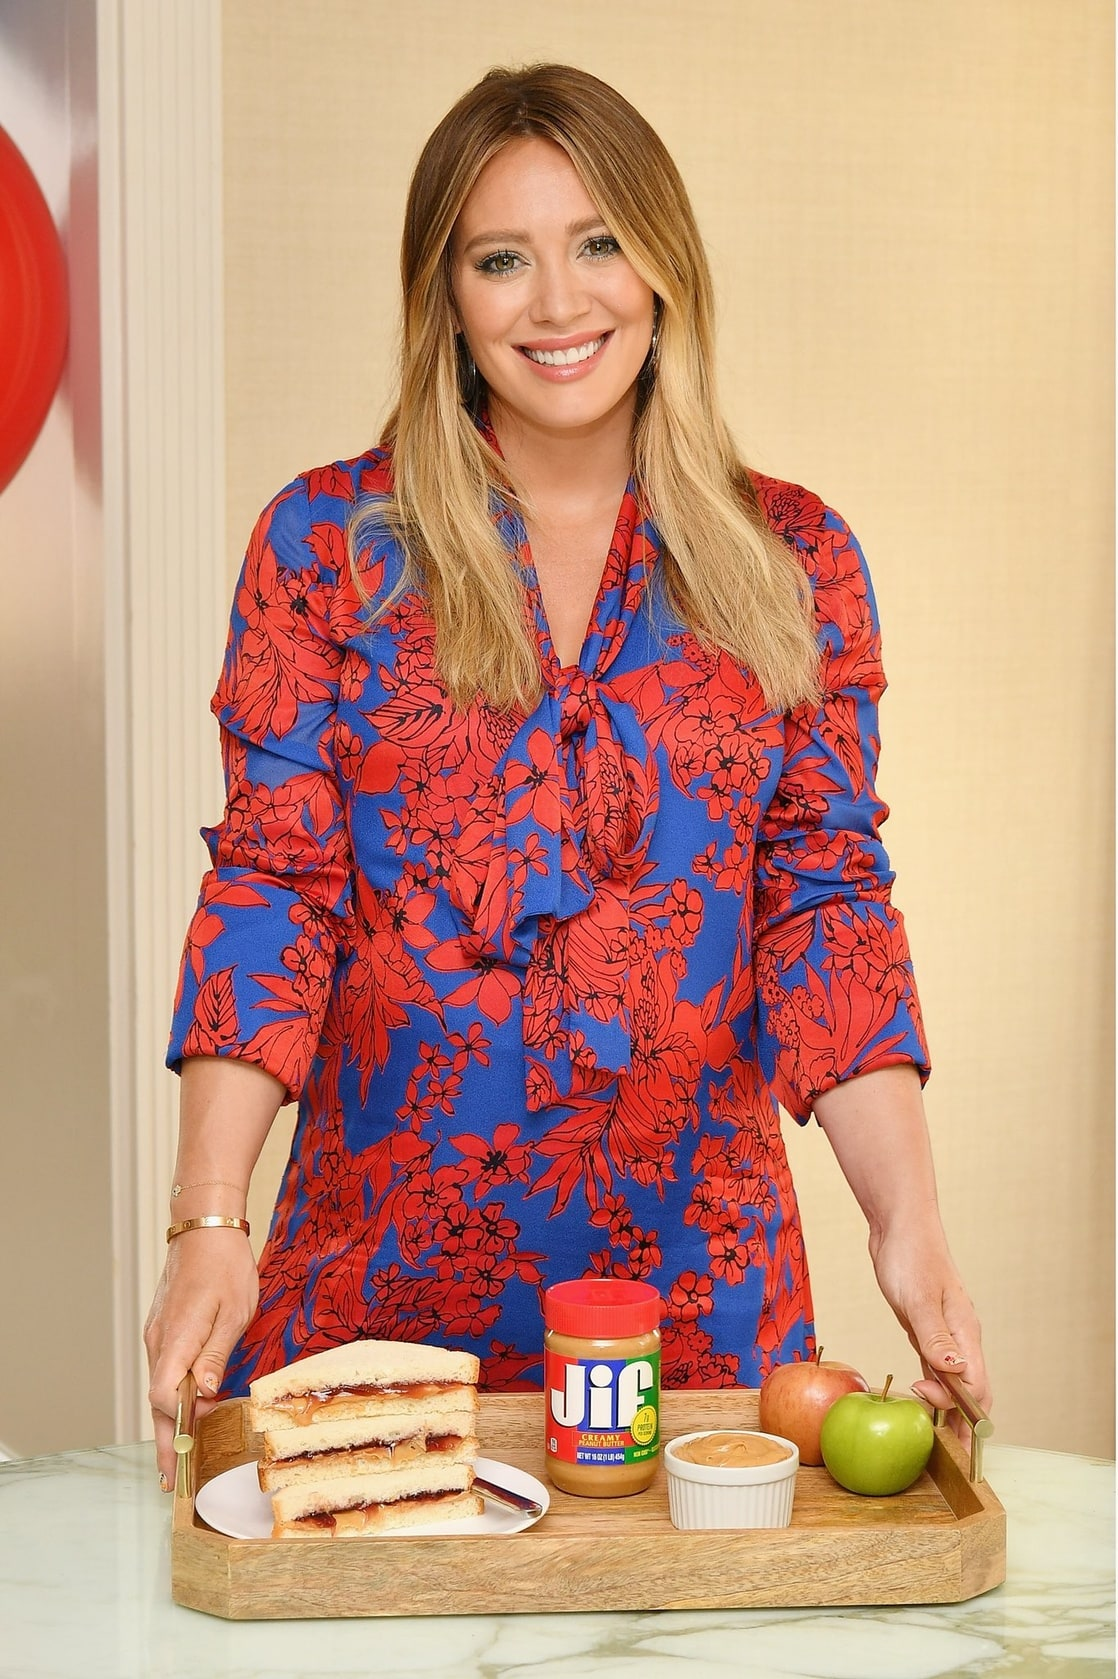 Hilary Duff  - Picture of H listal @hilary-duff